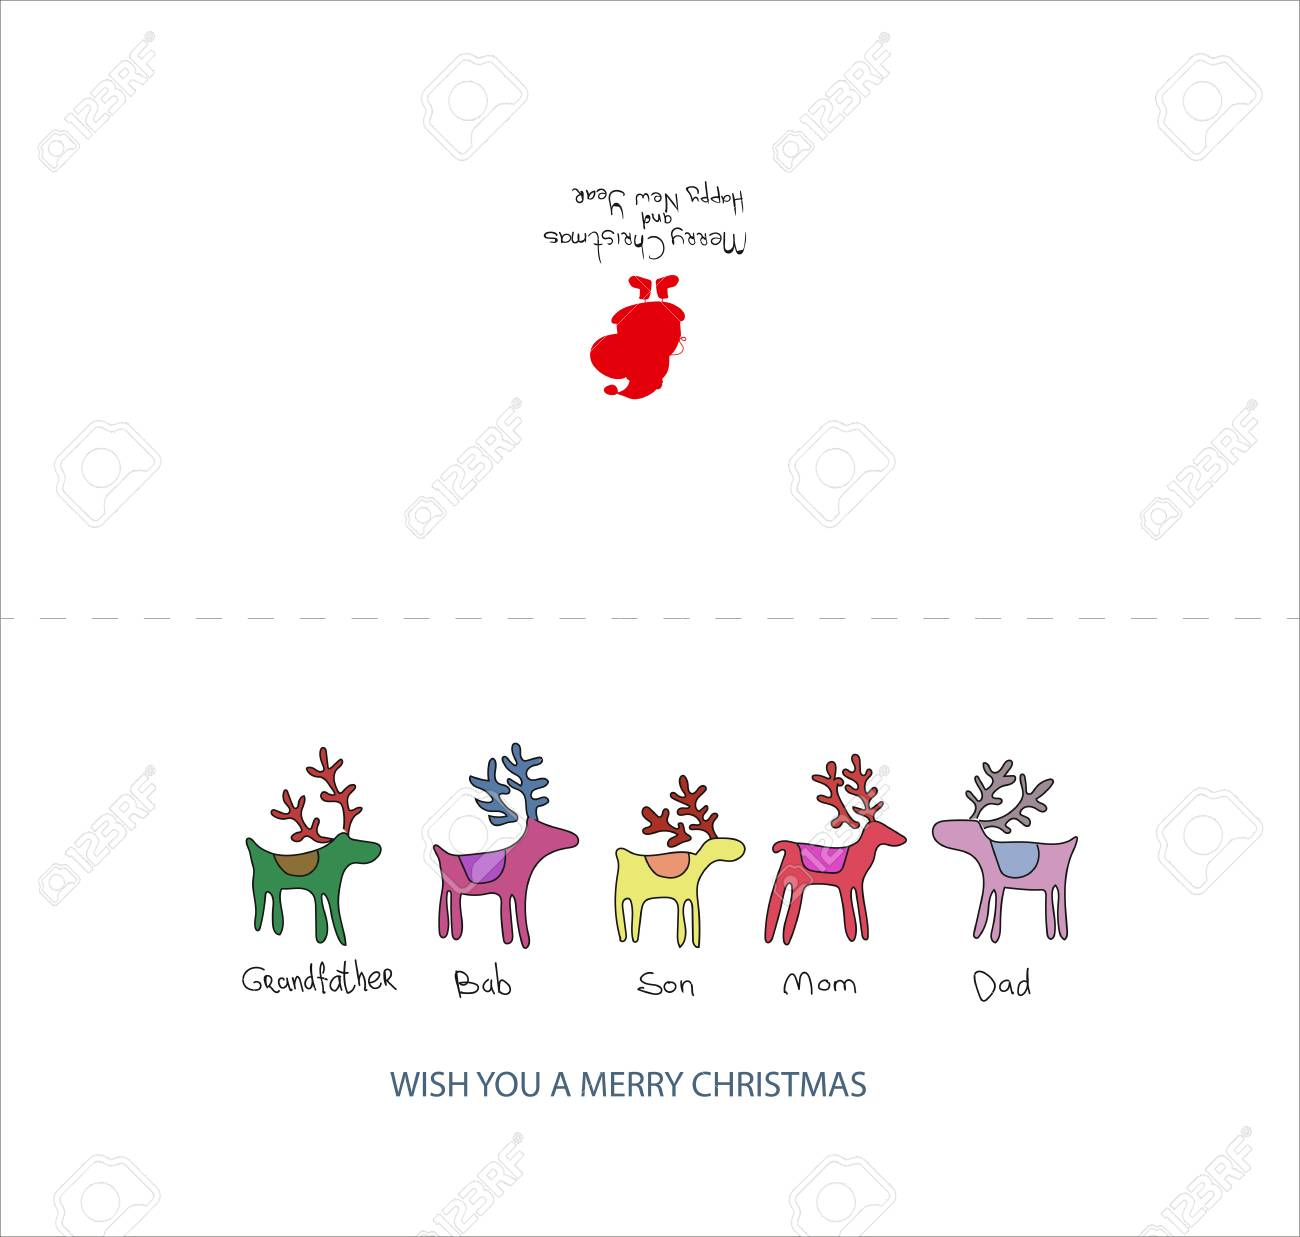 vector vector christmas card template christmas card with a family of deer in the style of childrens drawing